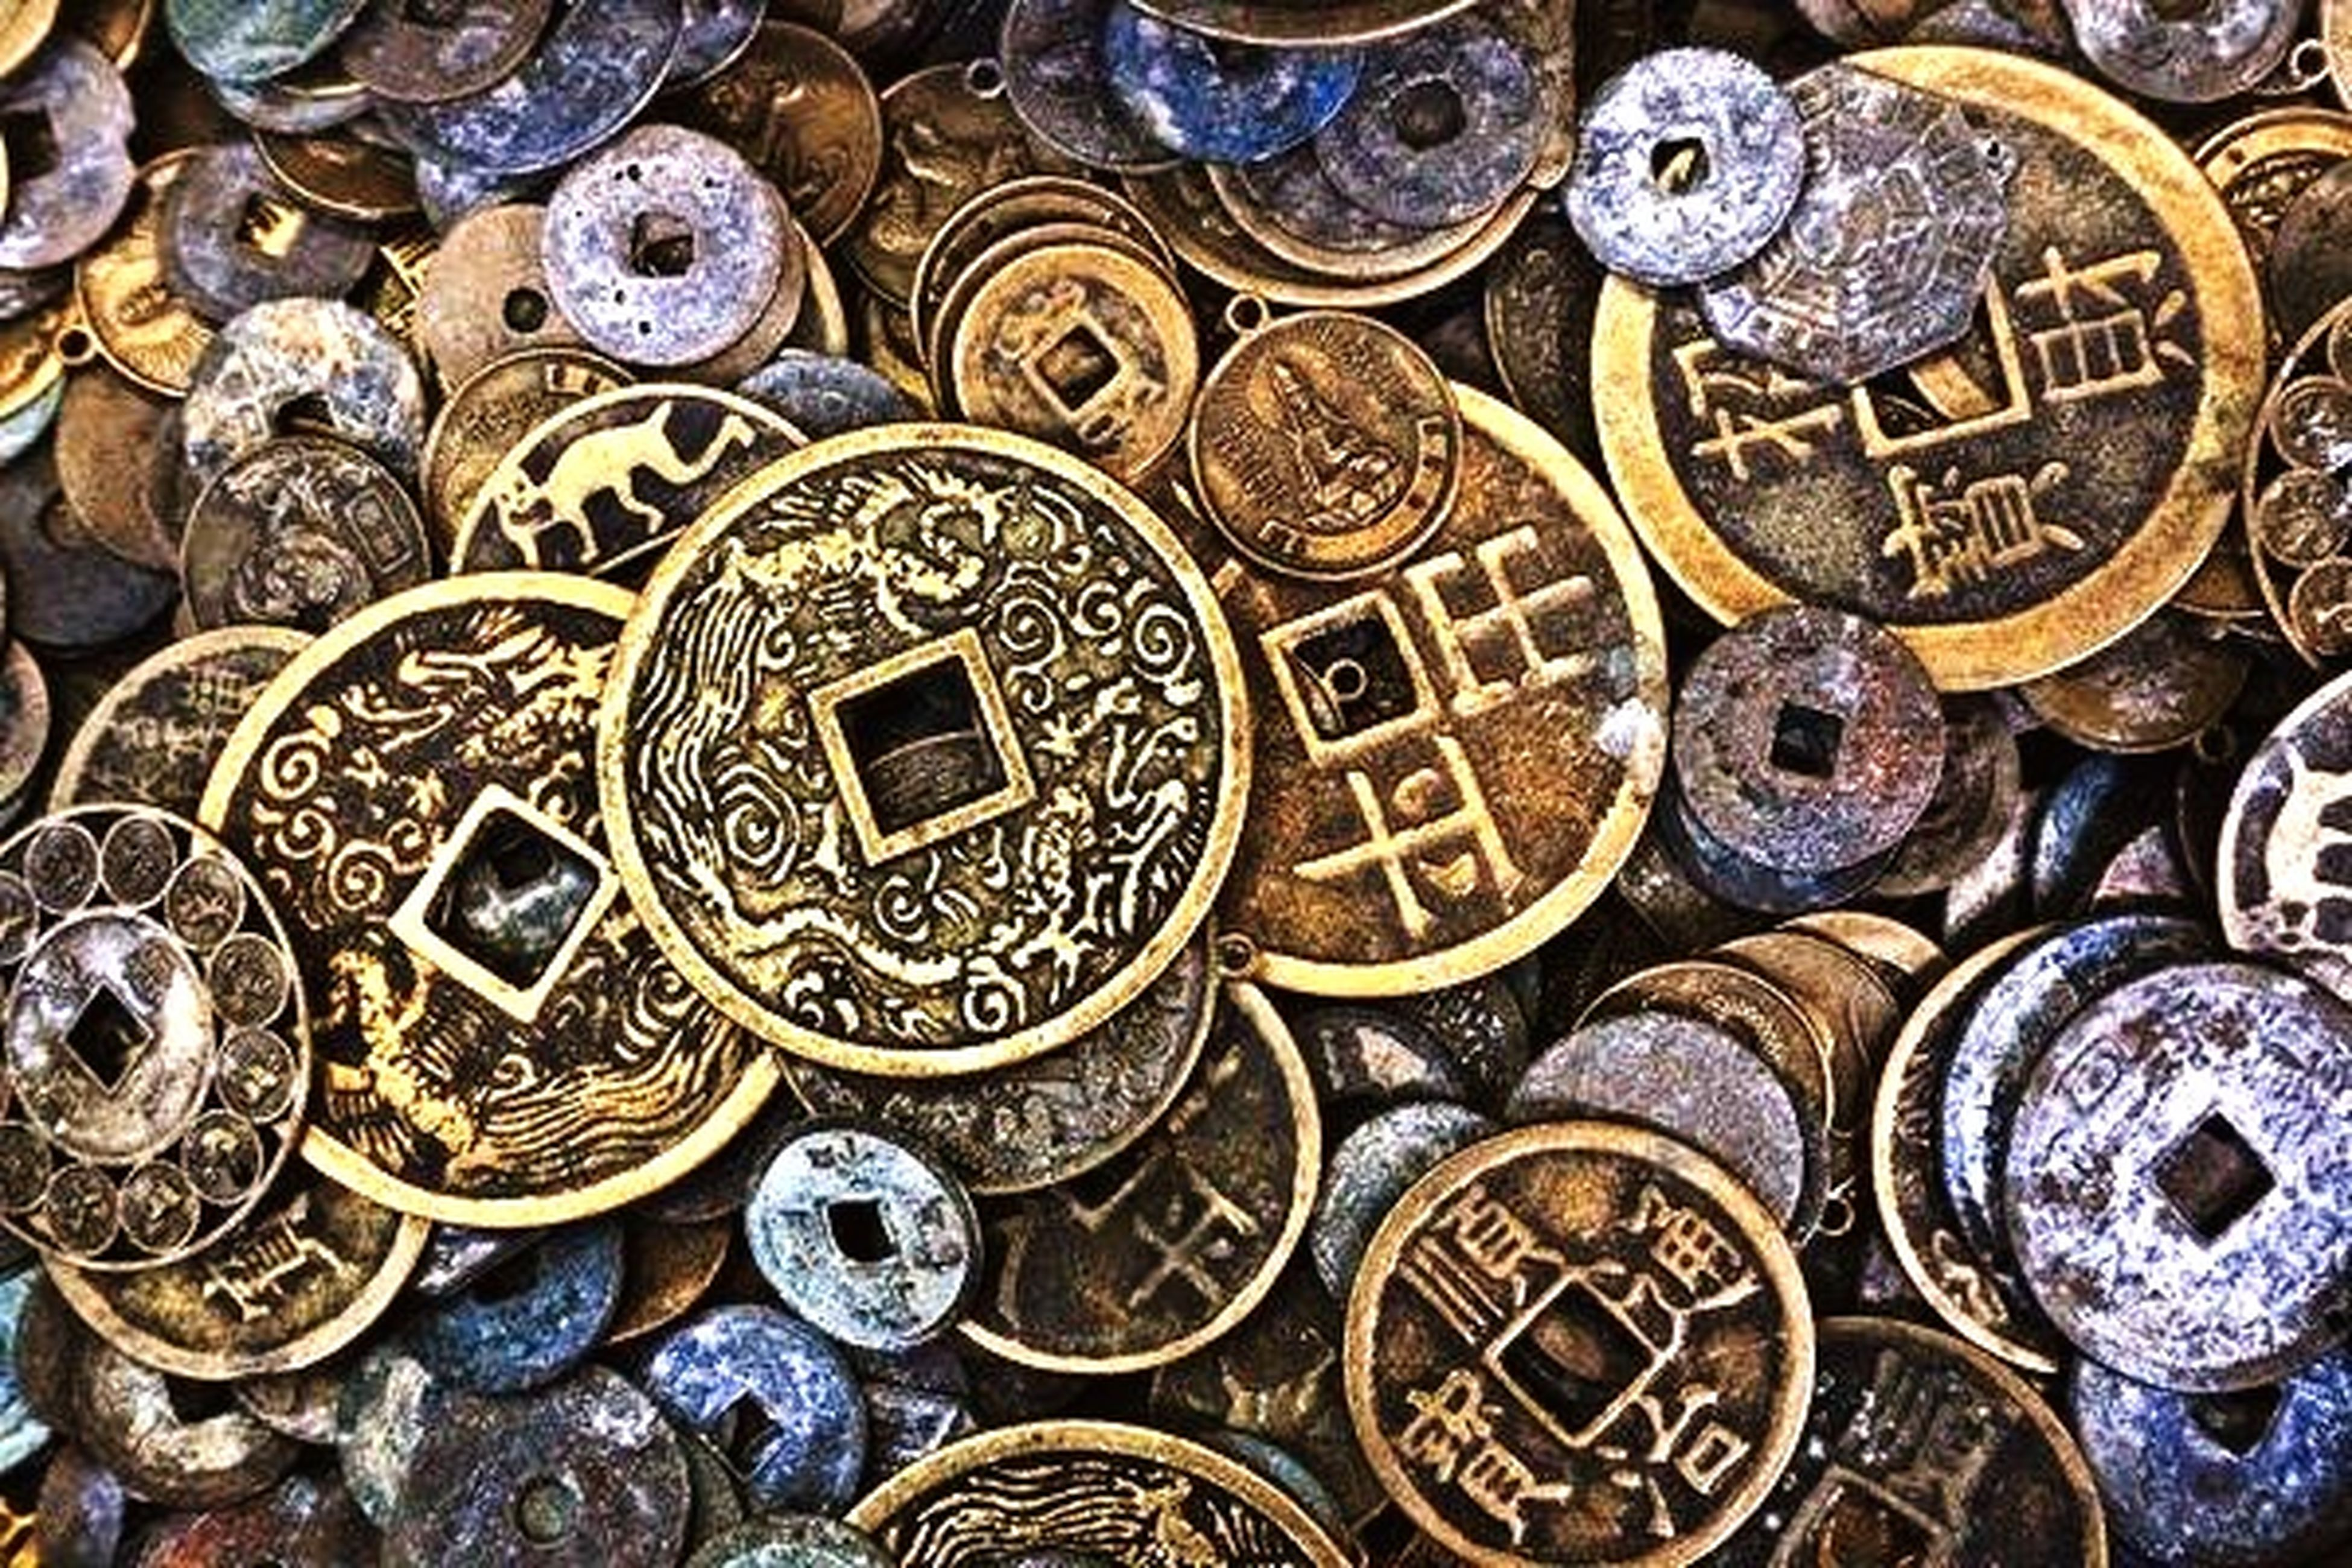 indoors, full frame, large group of objects, backgrounds, art and craft, abundance, close-up, variation, metal, design, ornate, art, high angle view, old, pattern, still life, coin, carving - craft product, antique, the past